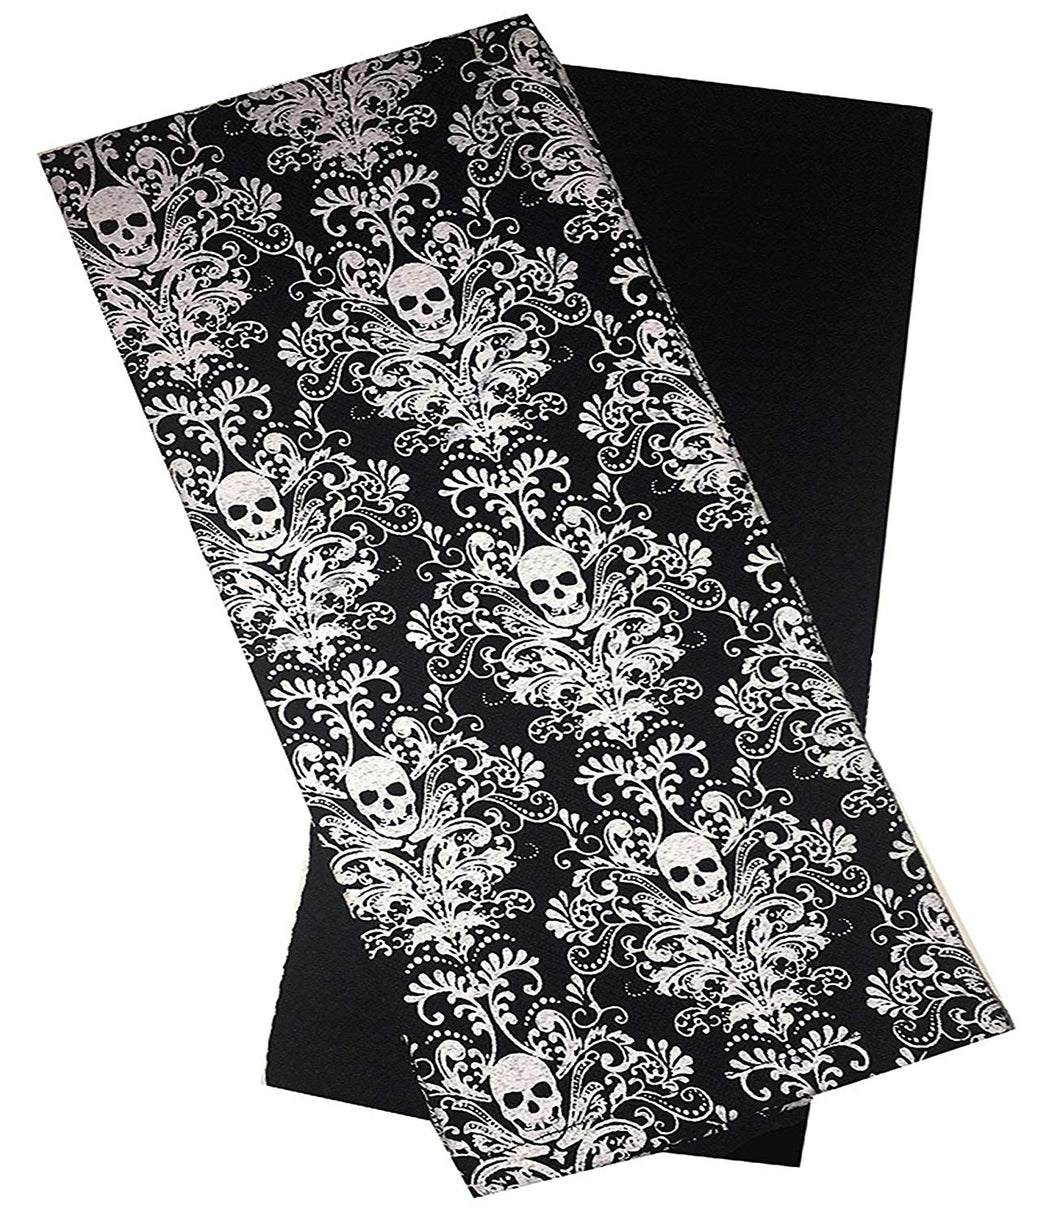 Skull Halloween Design Kitchen Towels - 2 Pack 16 x 28 in